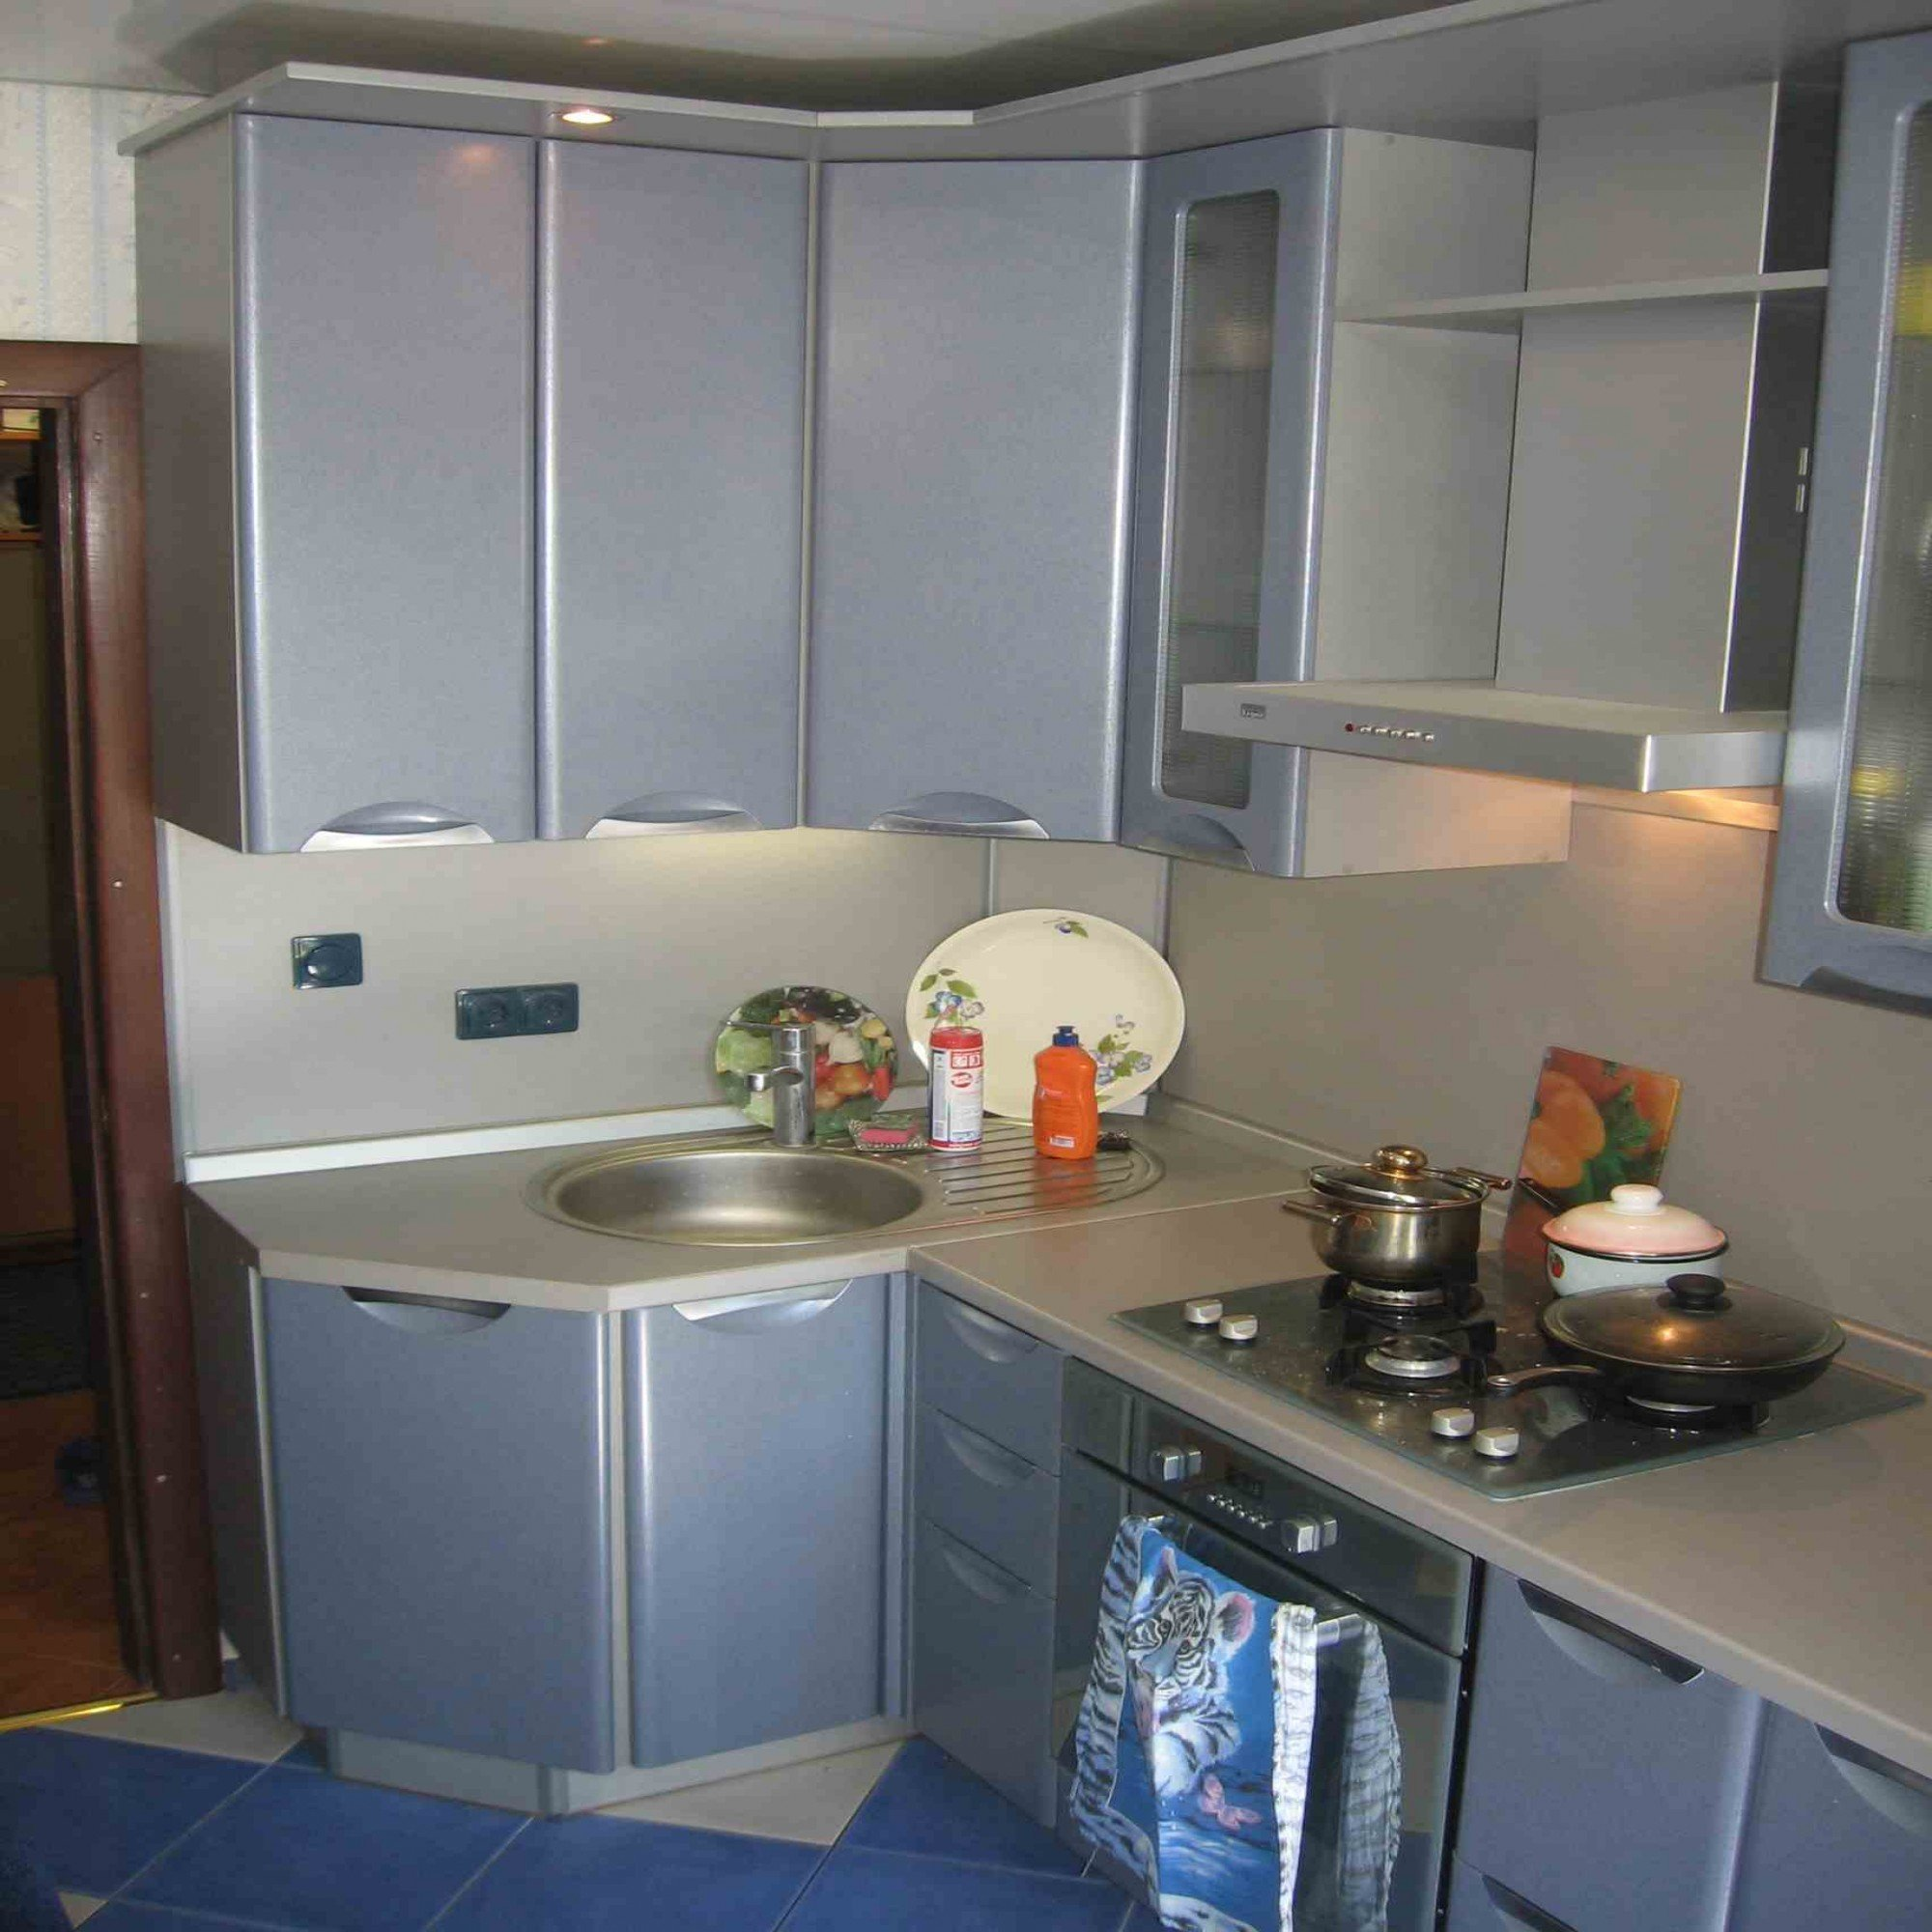 hanging_cupboard_in_the_kitchen